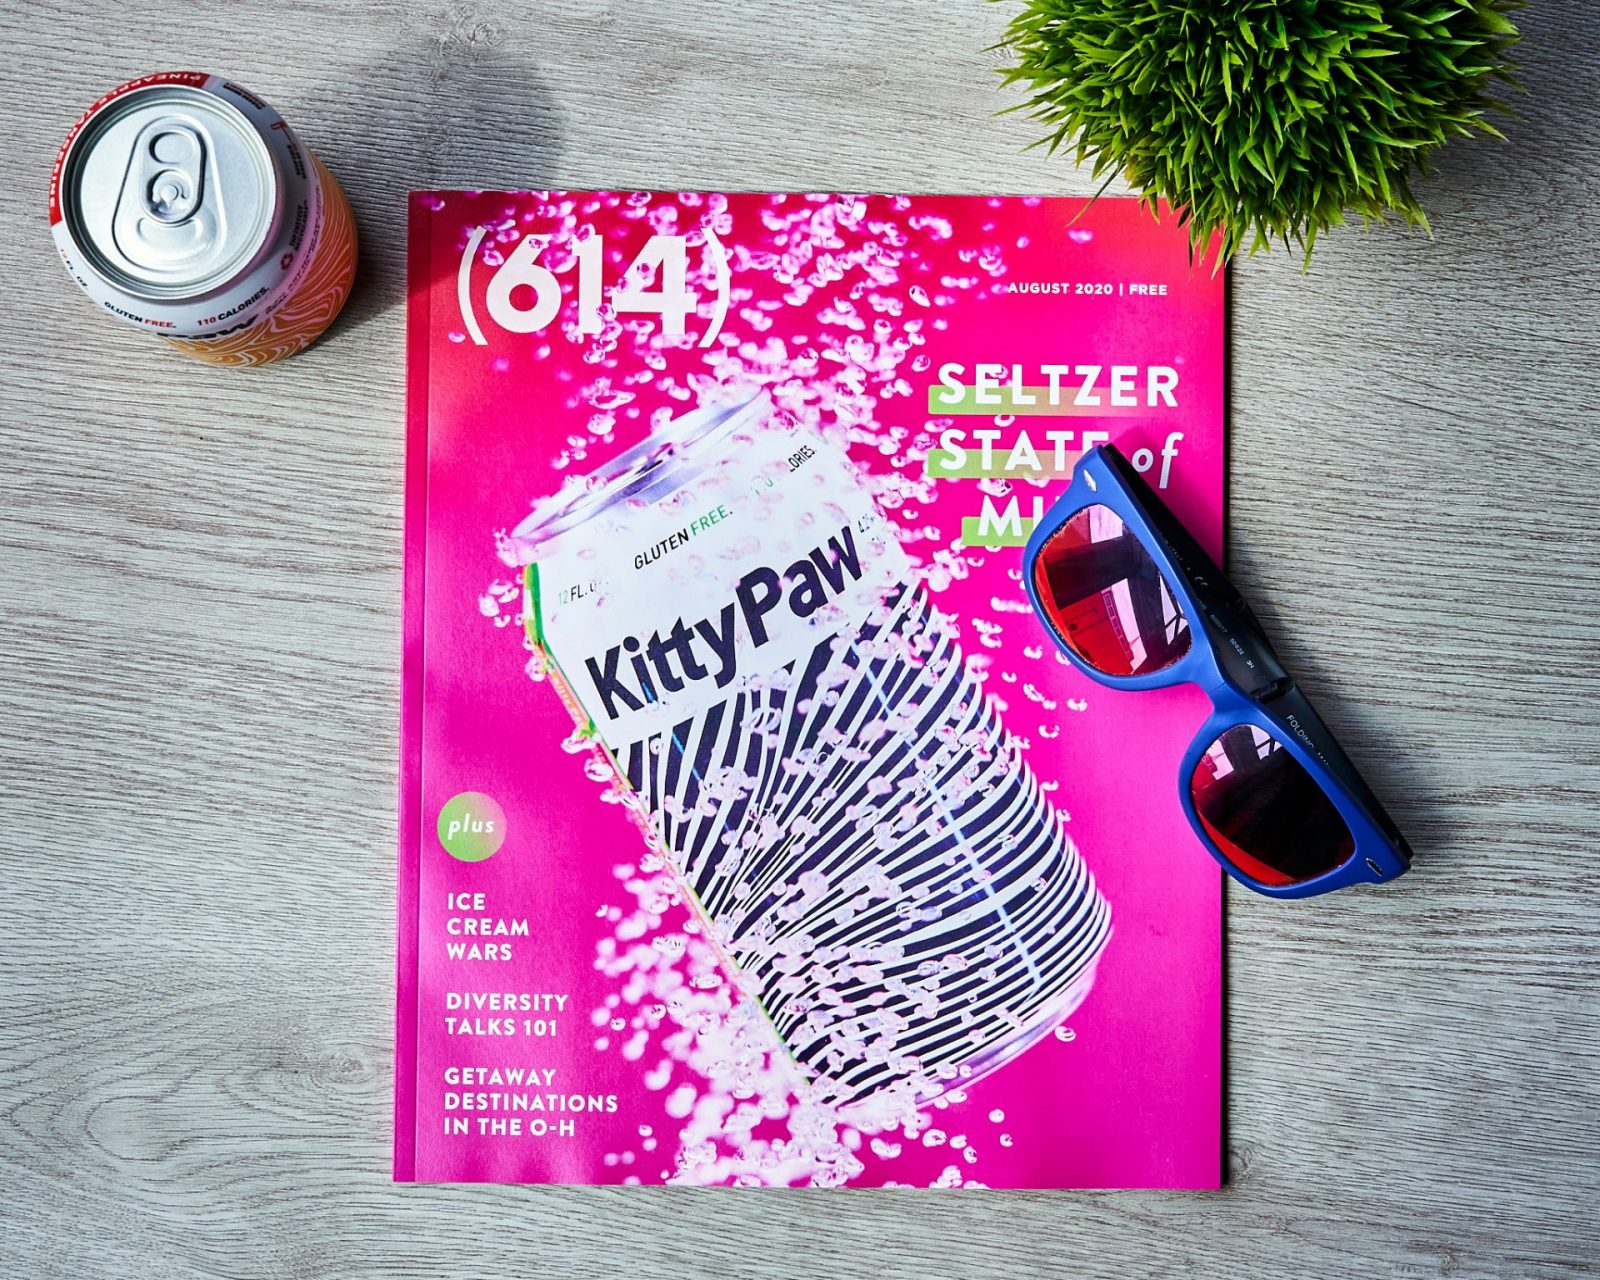 614 magazine August cover, hot pink with can of hard seltzer. Magazine is surrounded by a can of seltzer, a plant, and sunglasses.